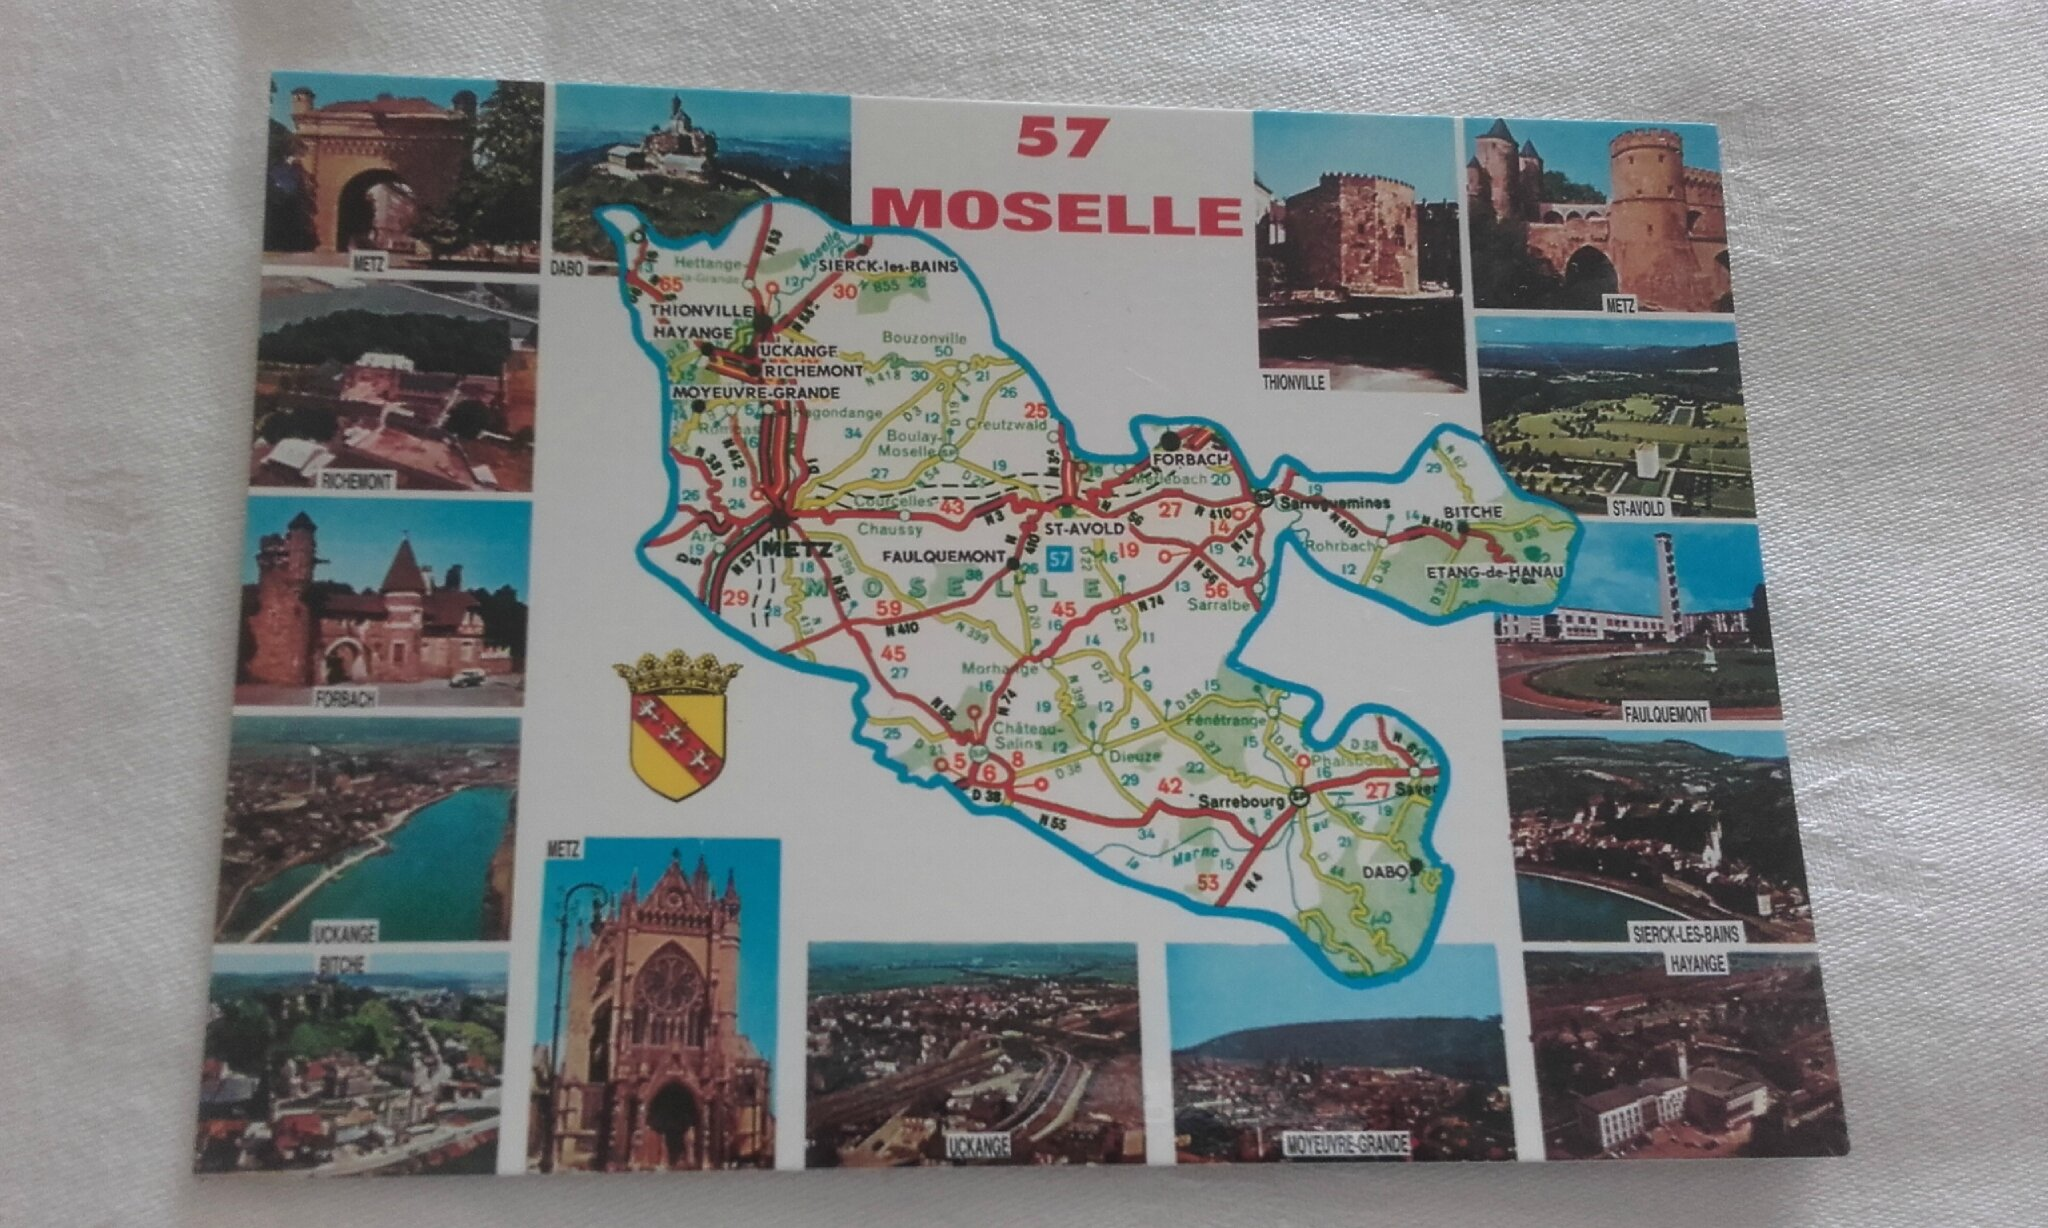 00 MOSELLE